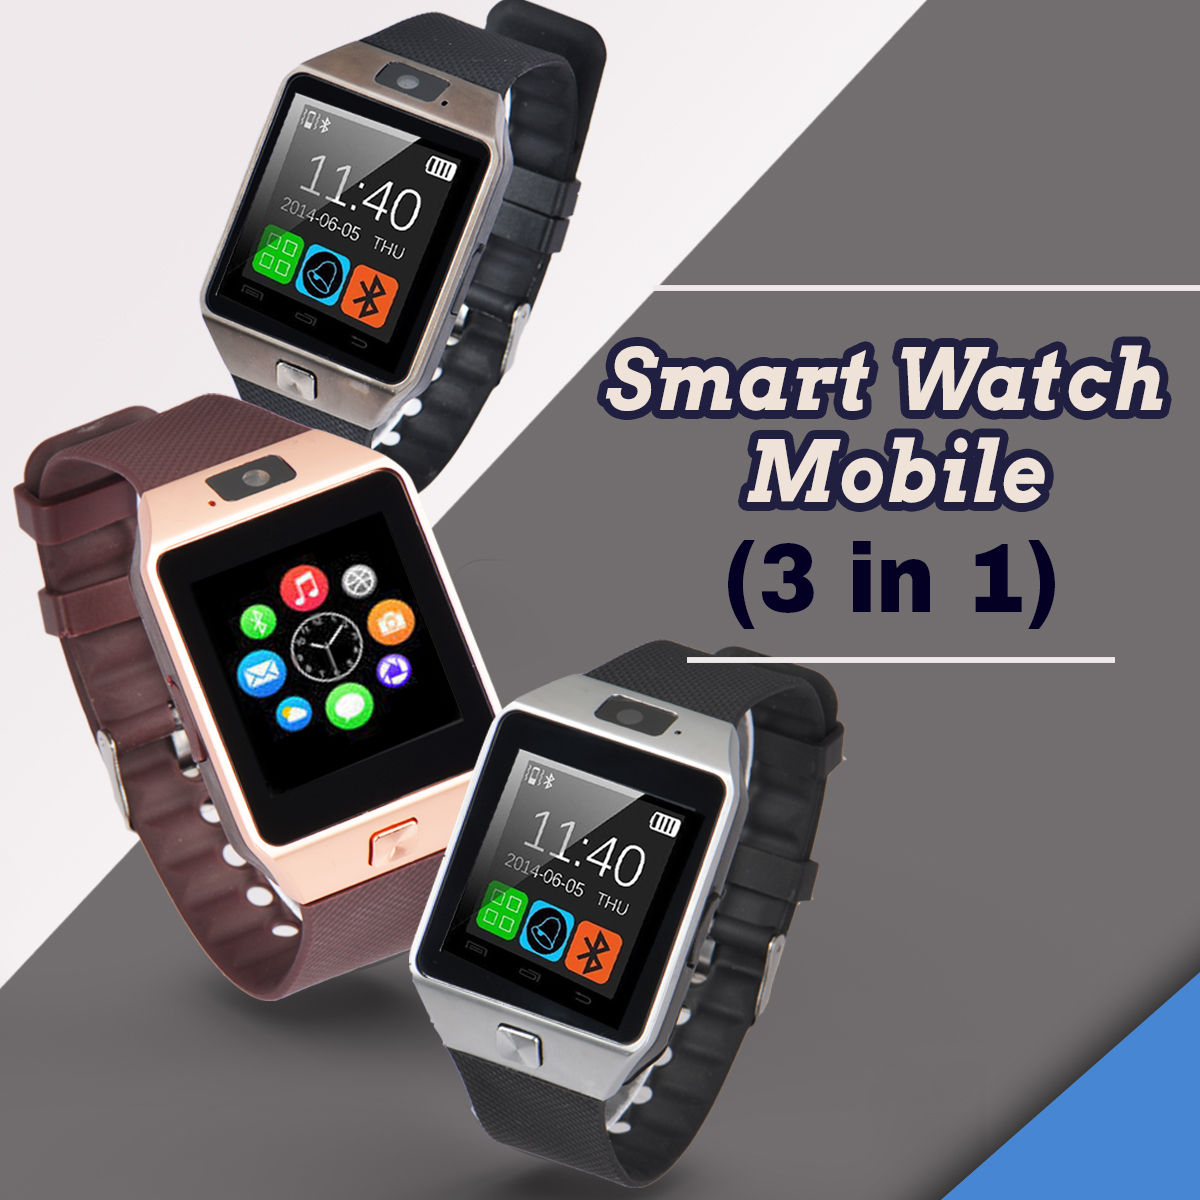 37f901c32b5 Buy Smart Watch Mobile (3 in 1) Online at Best Price in India on Naaptol.com